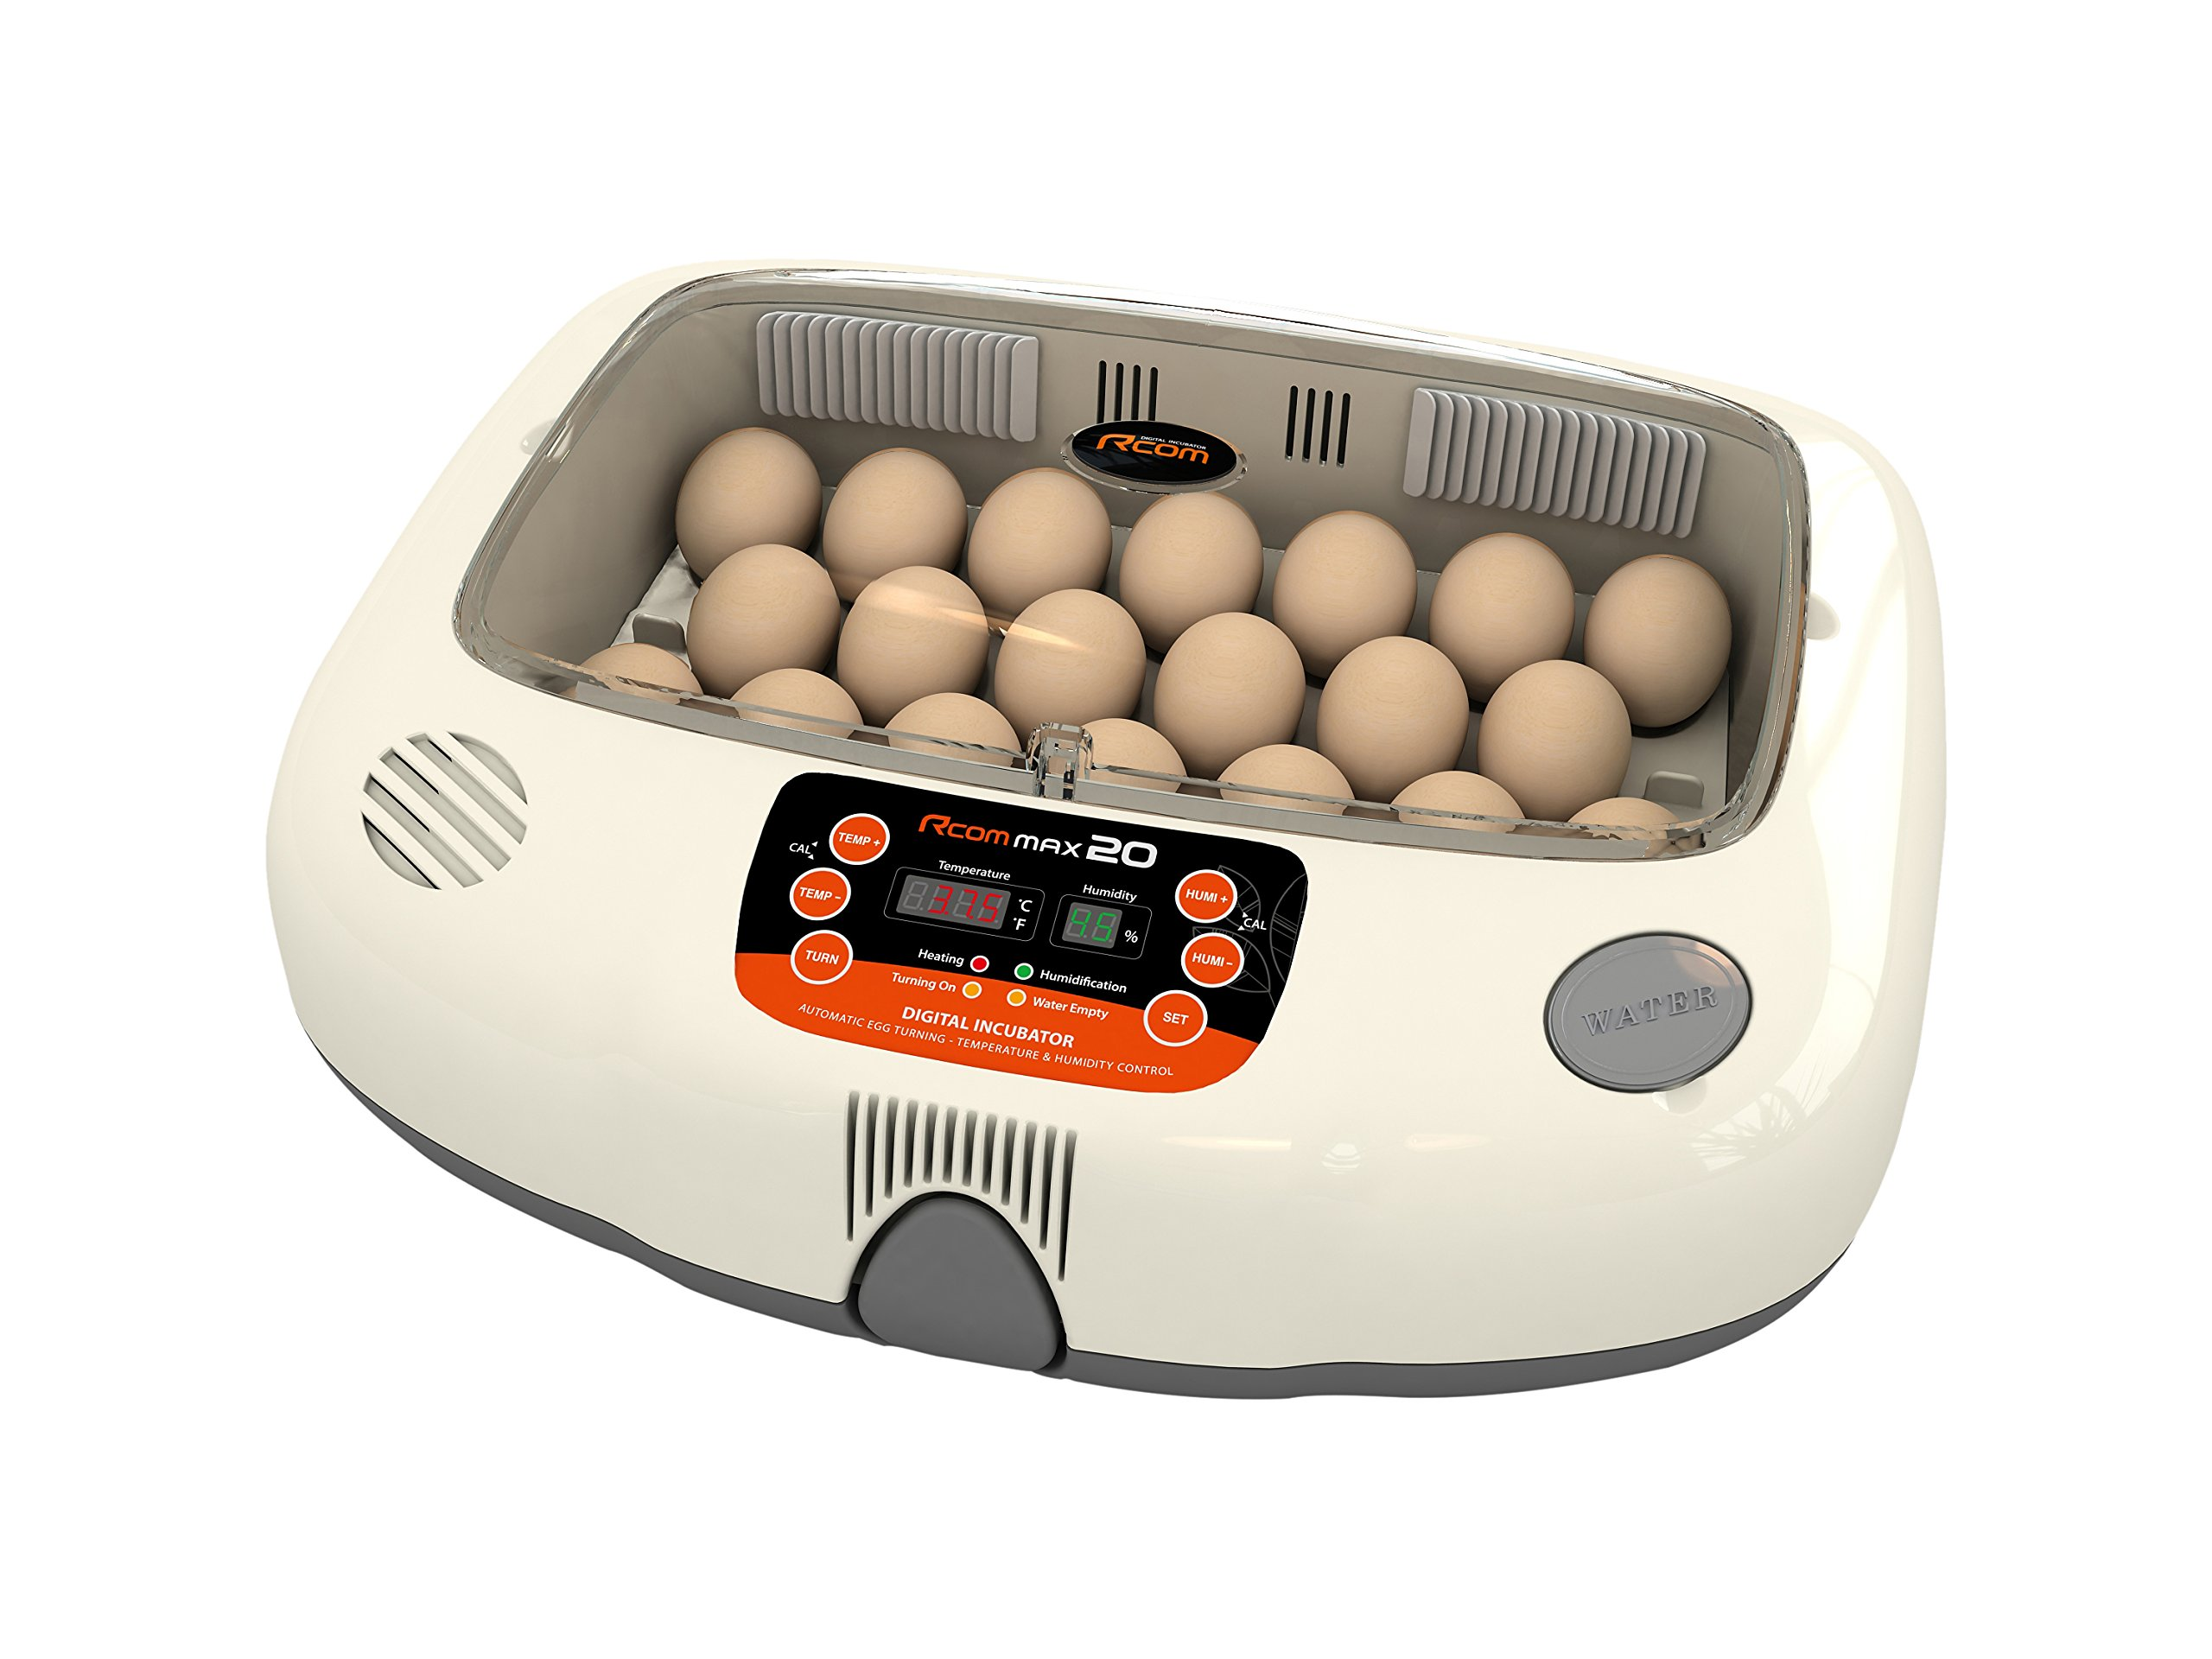 R-Com MX-20 Plastic/Metal Model Max 20 Automatic Digital Auto-Turning Egg Incubator